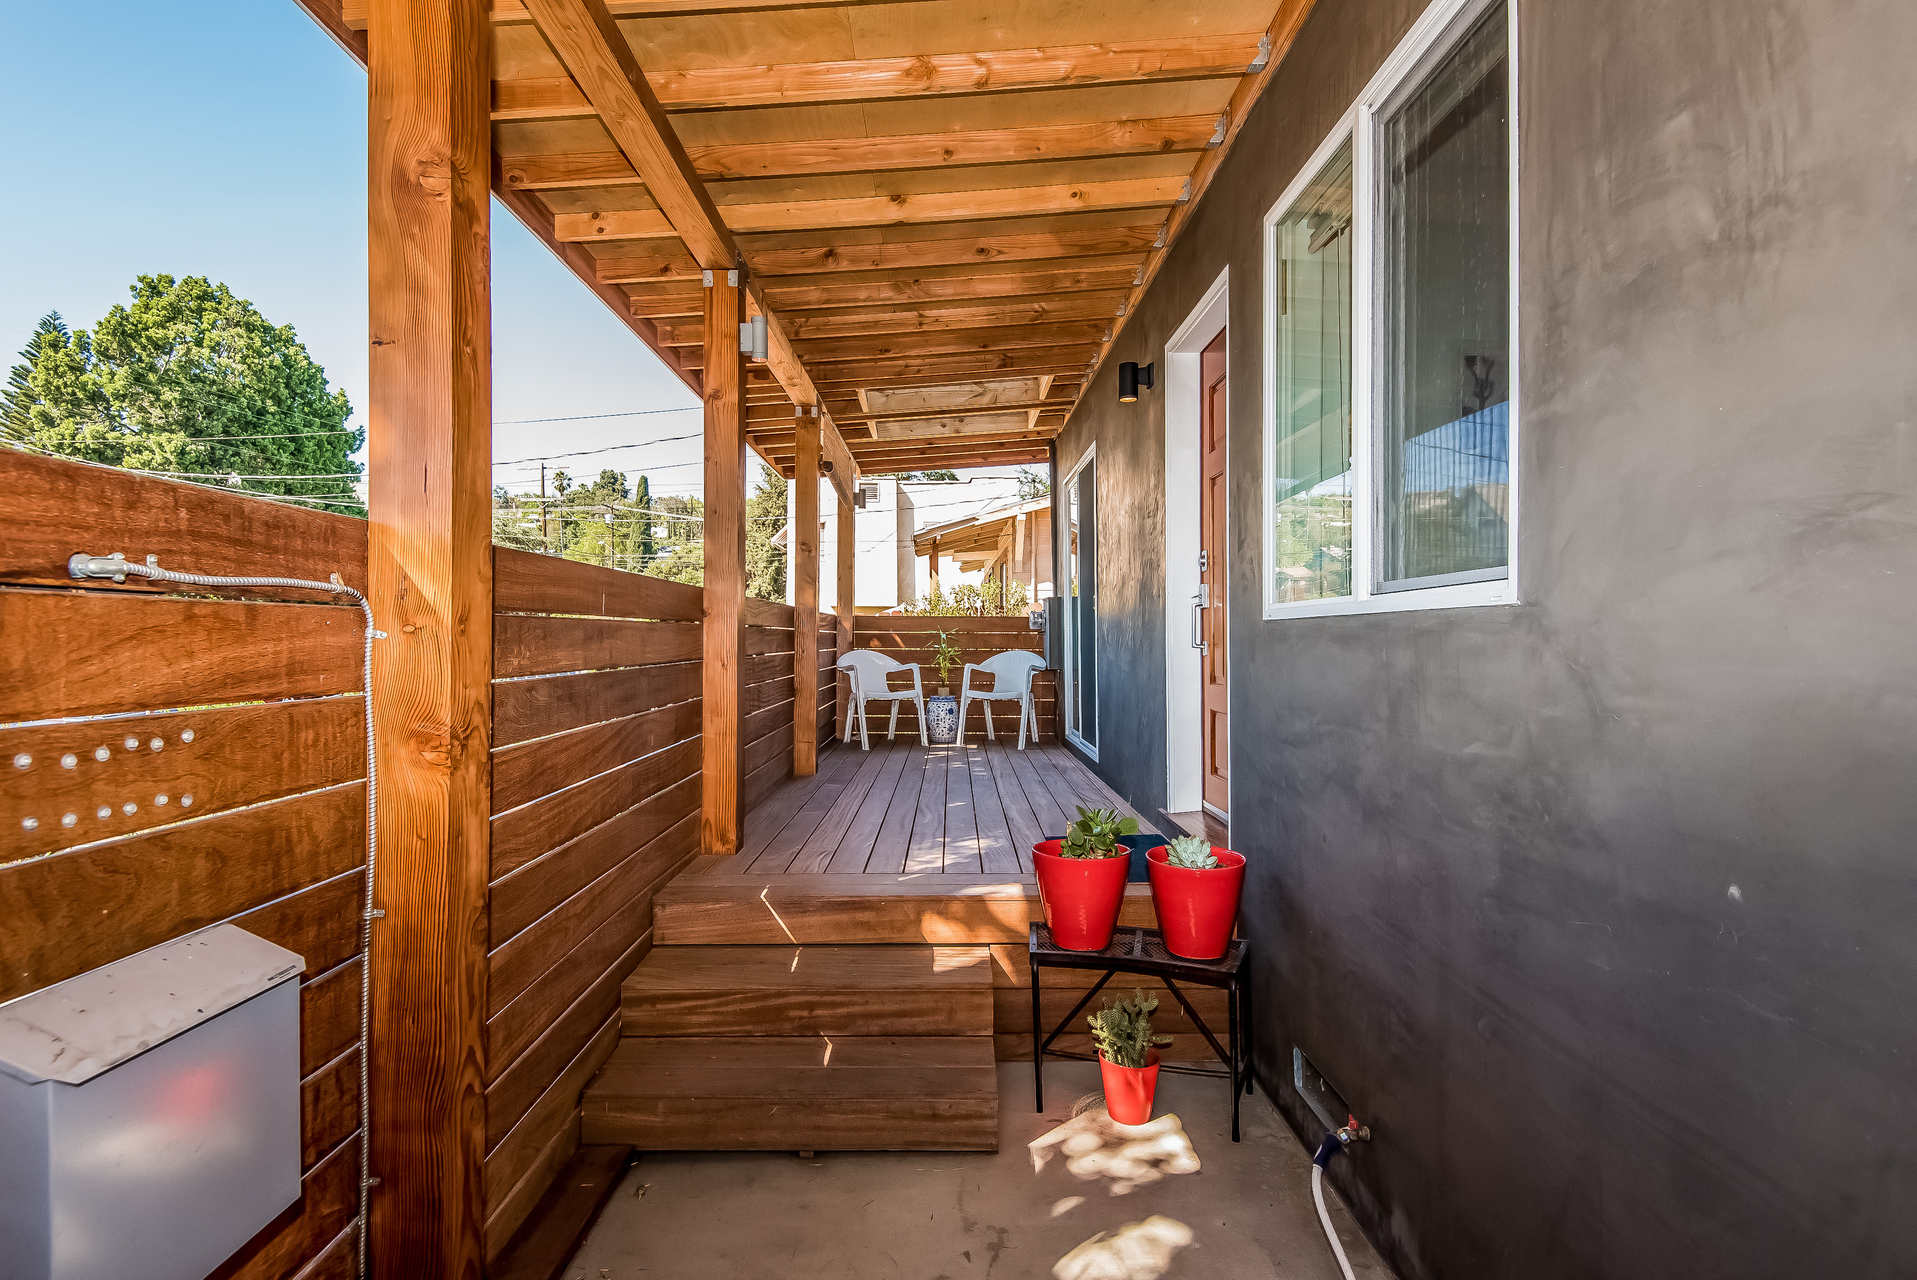 005-Covered_Porch-3114590-medium.jpg